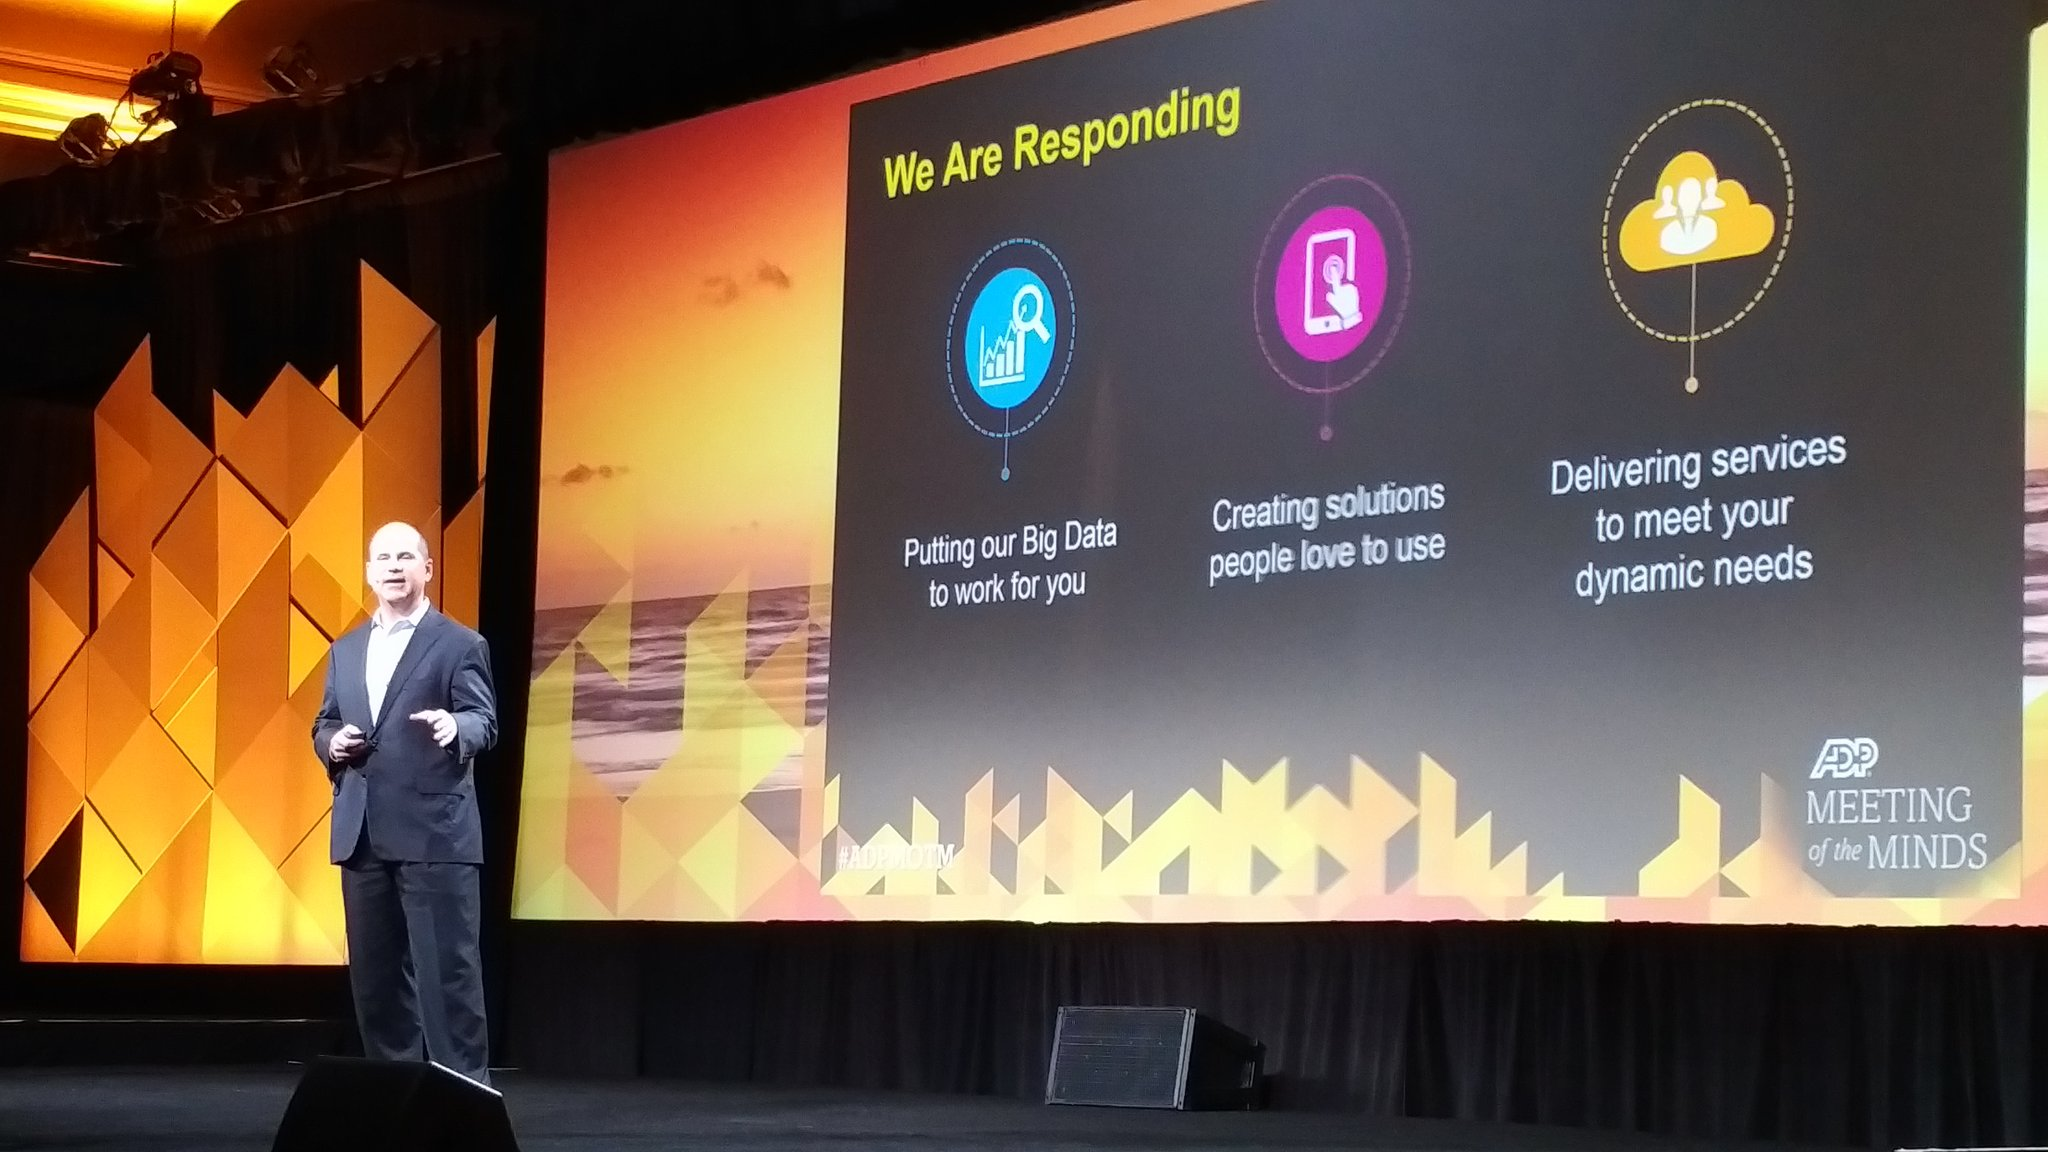 Rodriguez - @ADP is responding  - #BigData for customers  - solutions people love - deliver services that meet needs  #ADPMOTM https://t.co/HXDrNCG5Jt